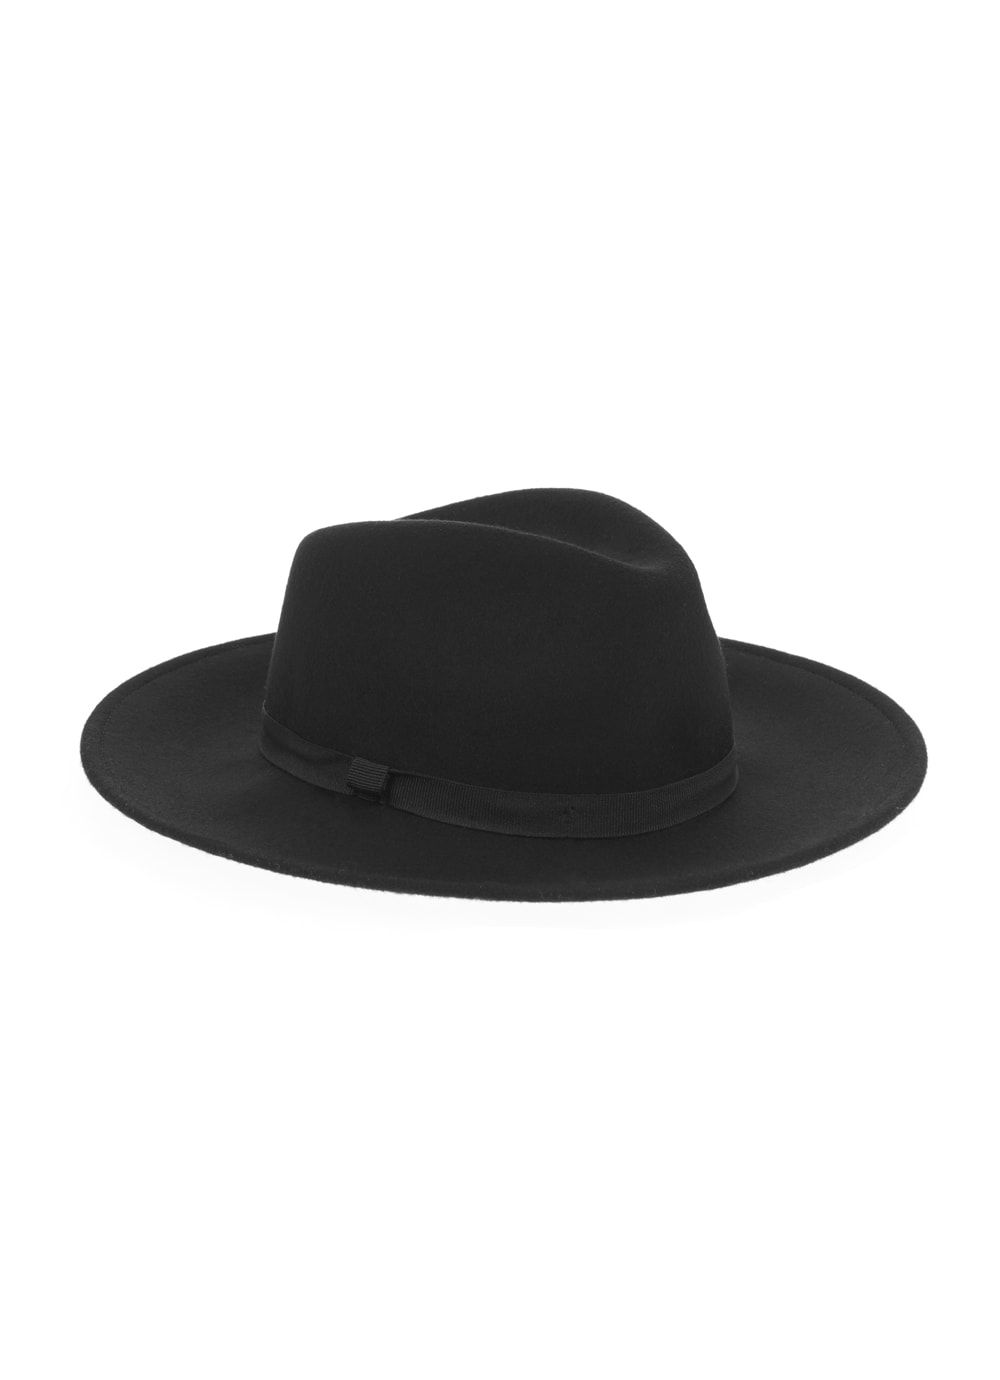 Mint Velvet Black Wide Brim Fedora Hat Black